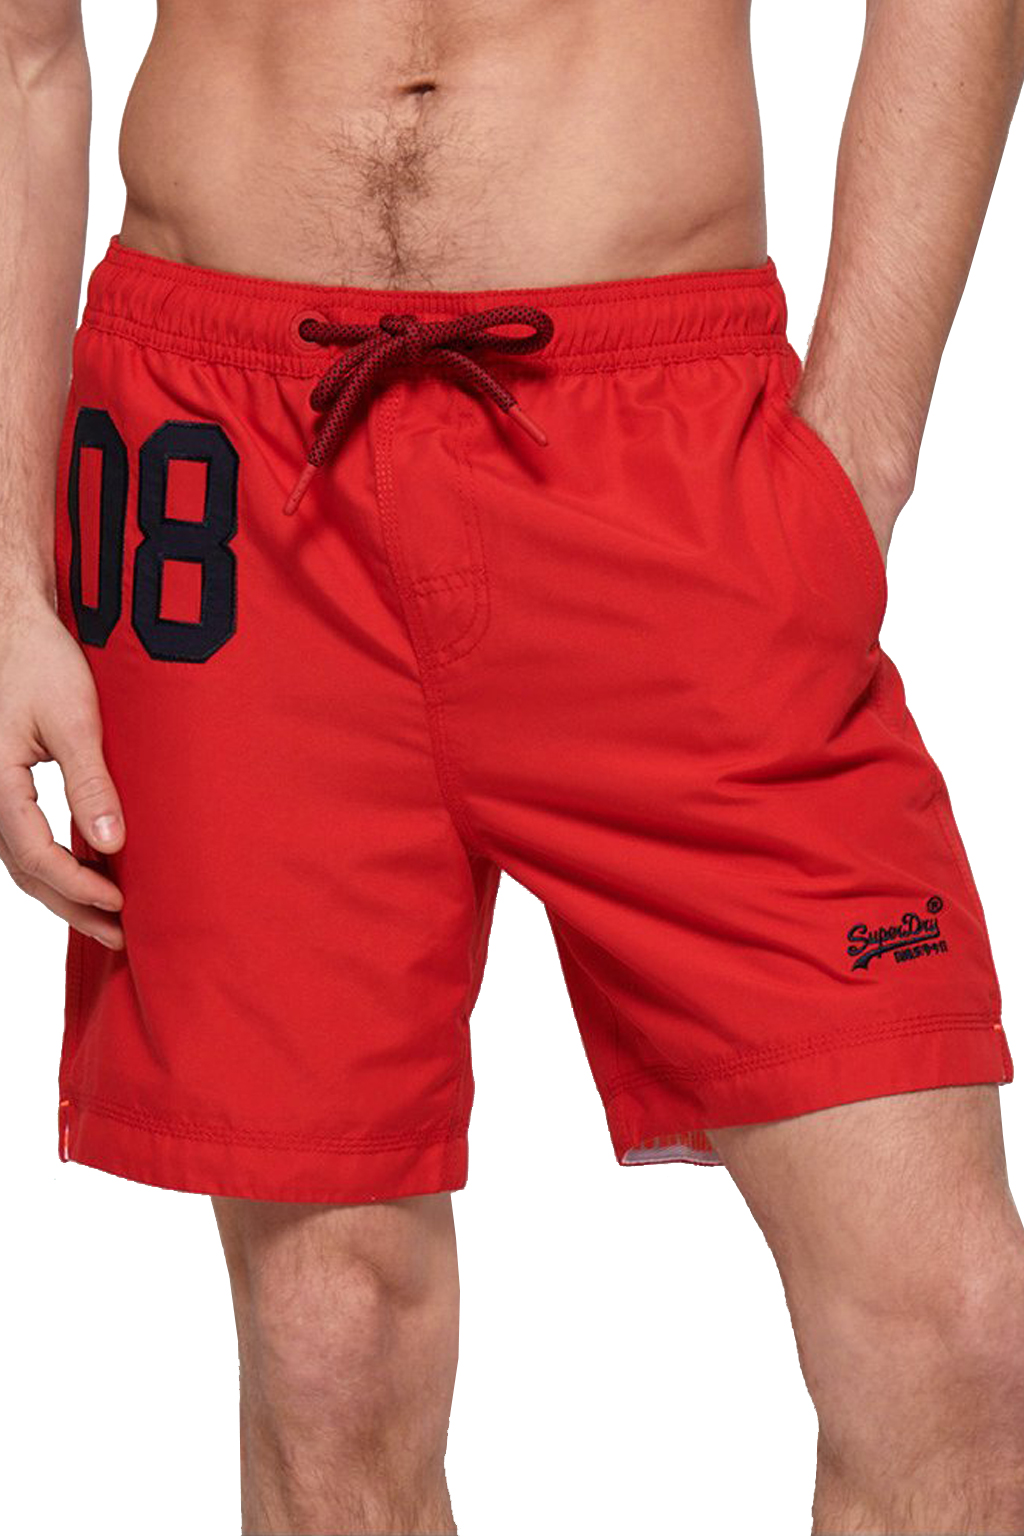 cb67d7f755d SUPERDRY WATER POLO ΜΑΓΙΩ ΑΝΔΡΙΚΟ M30018AT-OXL